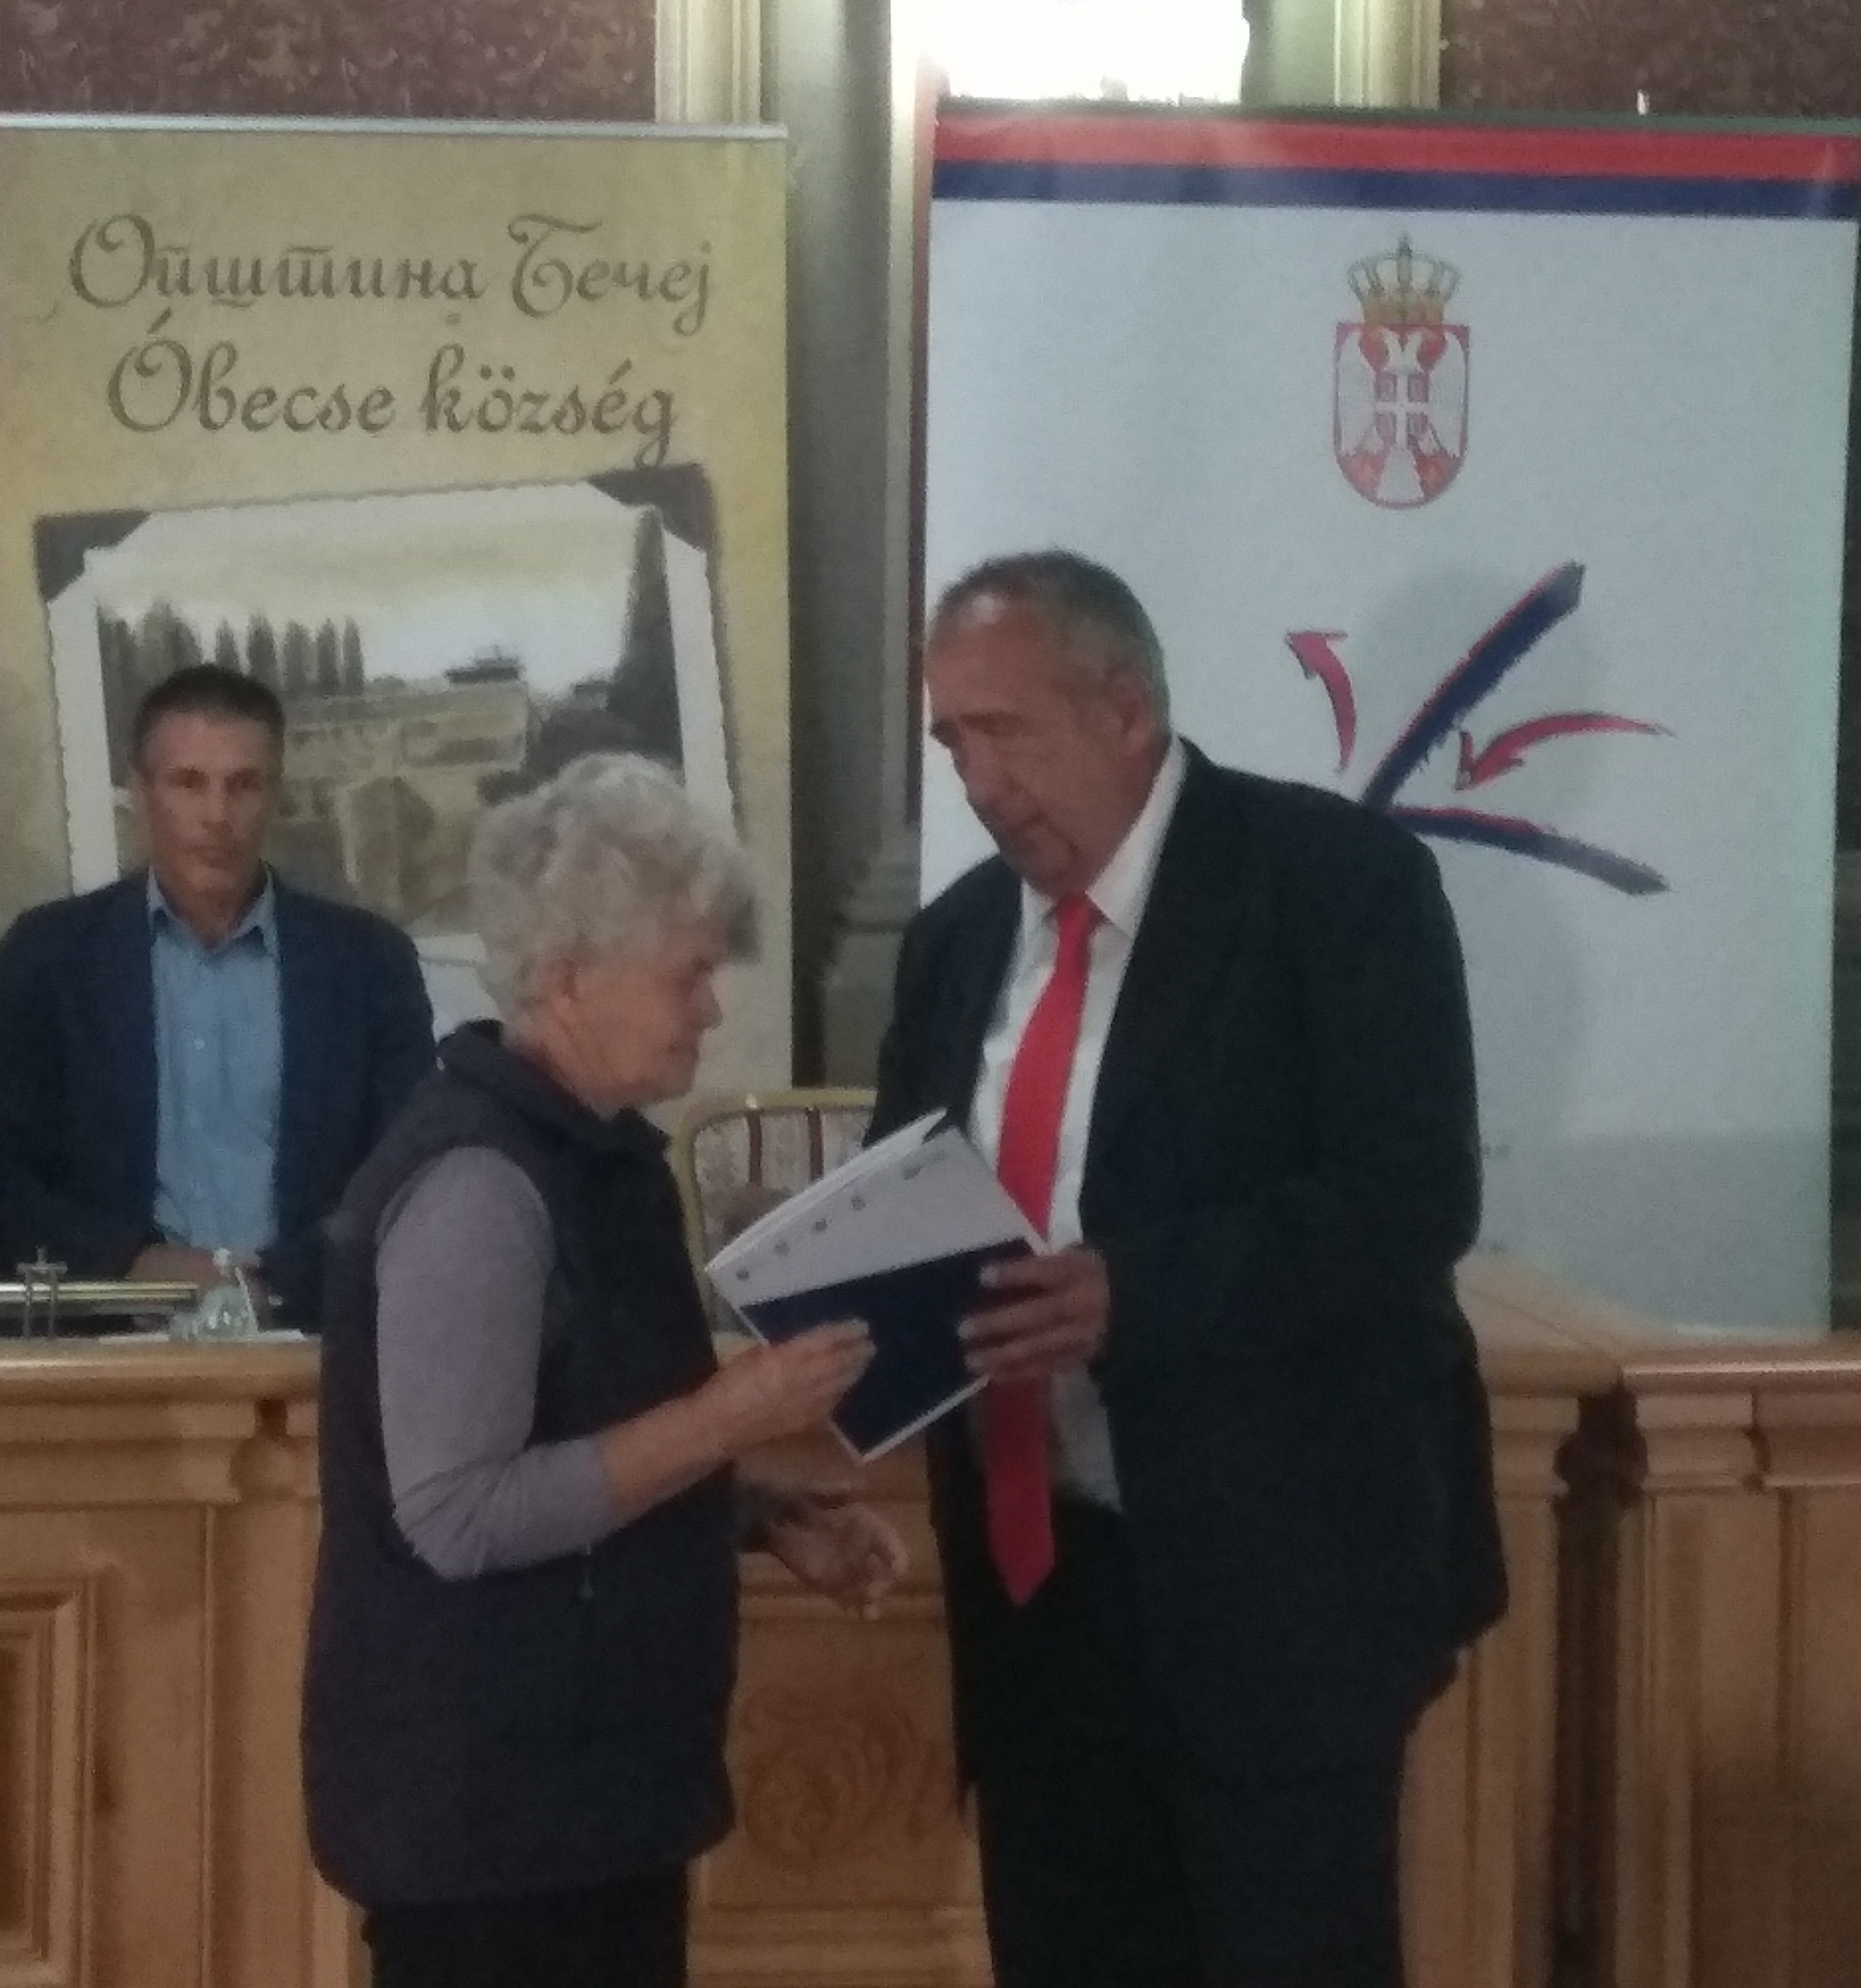 Contracts for the purchase of 22 farmhouses with a yard for refugee families from Bosnia and Herzegovina and Croatia officially presented in Becej